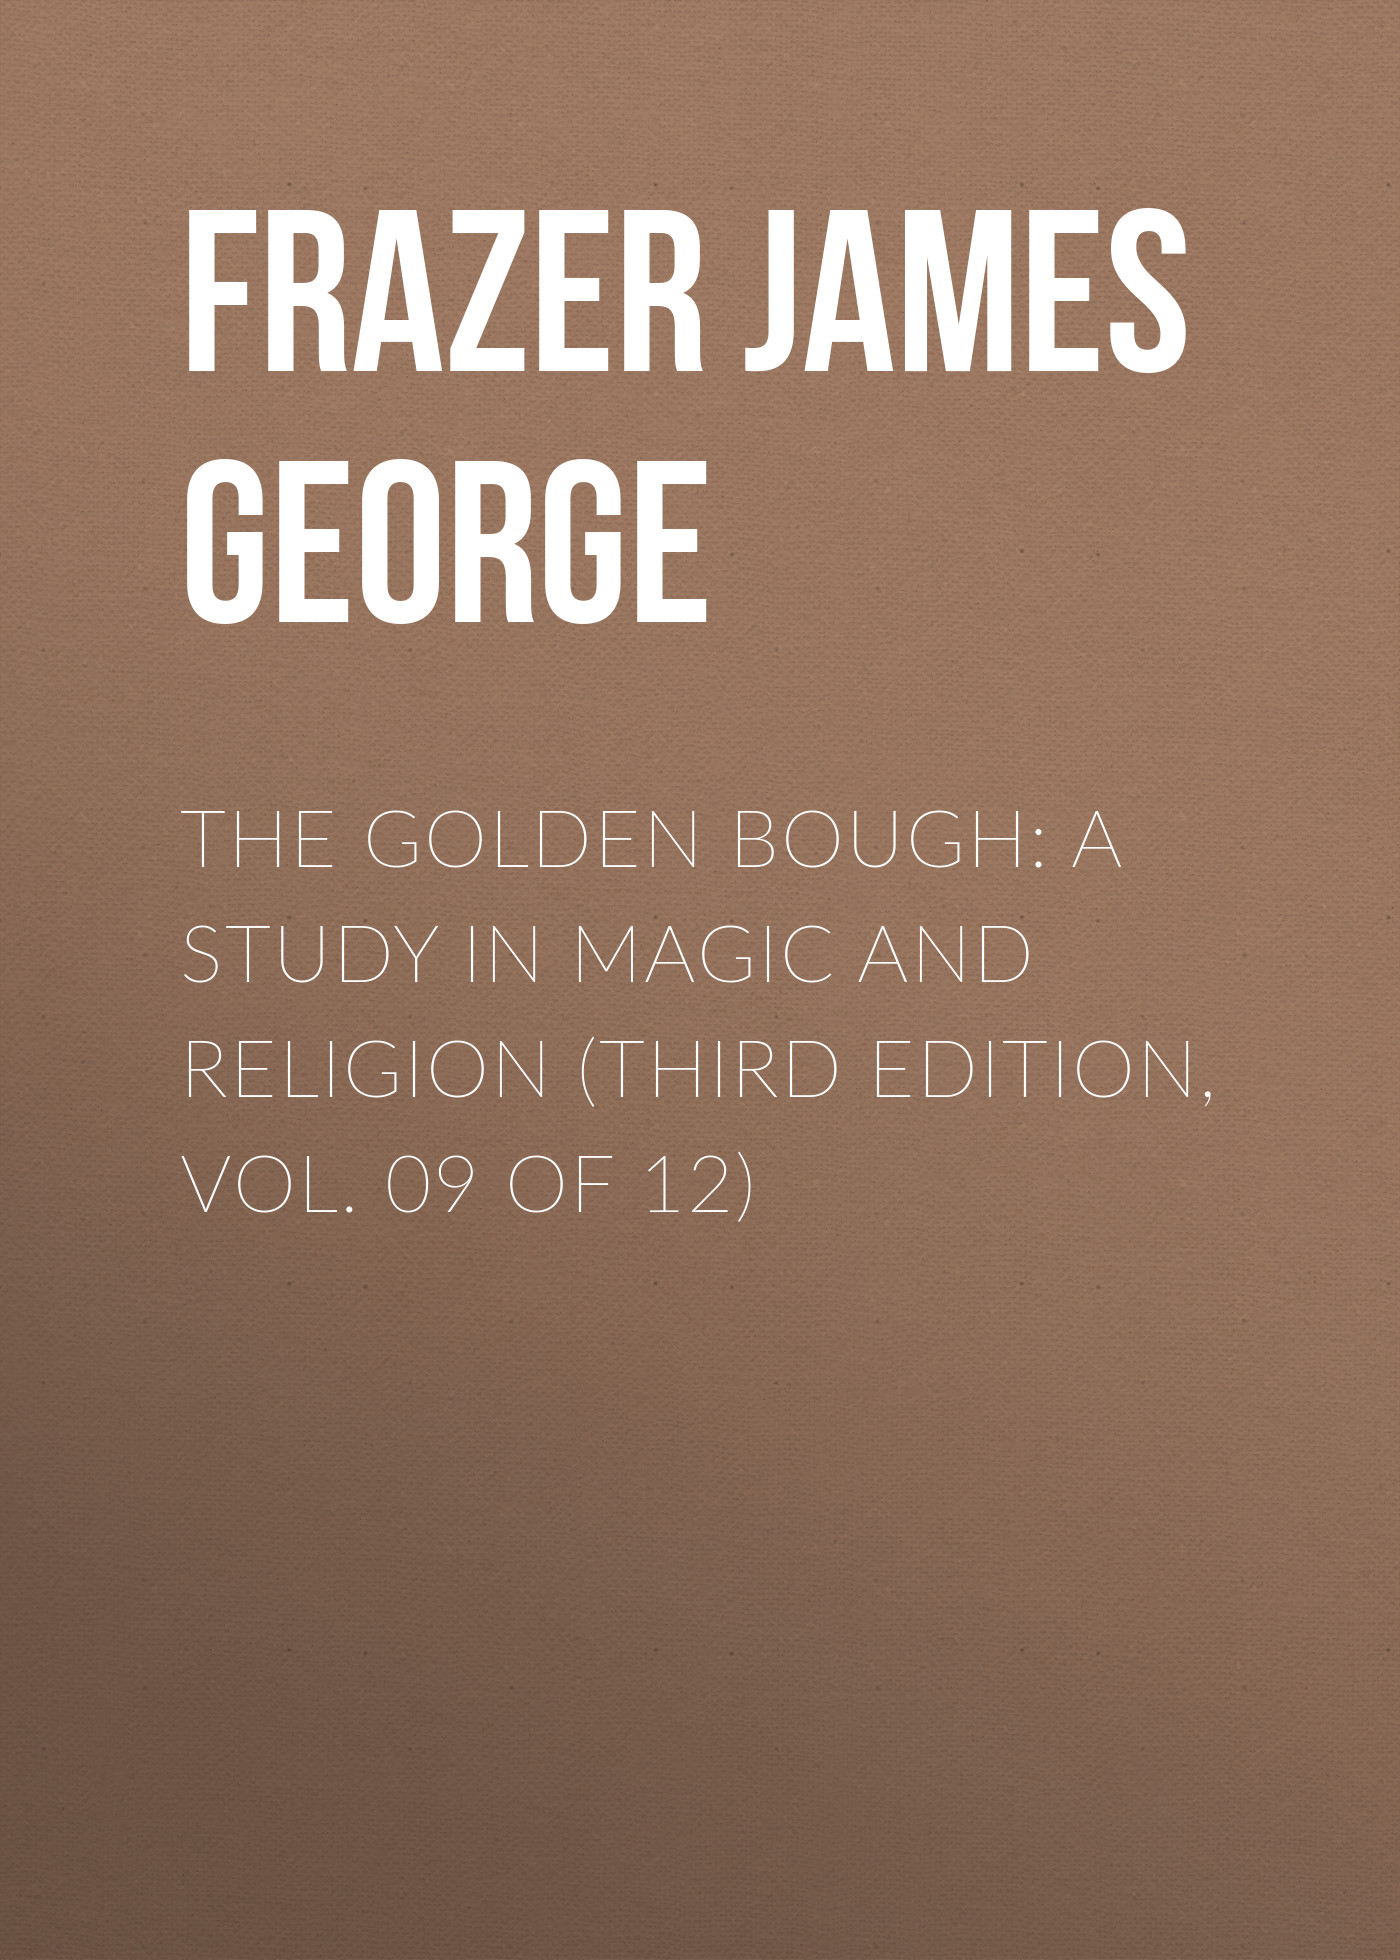 Frazer James George The Golden Bough: A Study in Magic and Religion (Third Edition, Vol. 09 of 12) frazer james george the belief in immortality and the worship of the dead volume 2 of 3